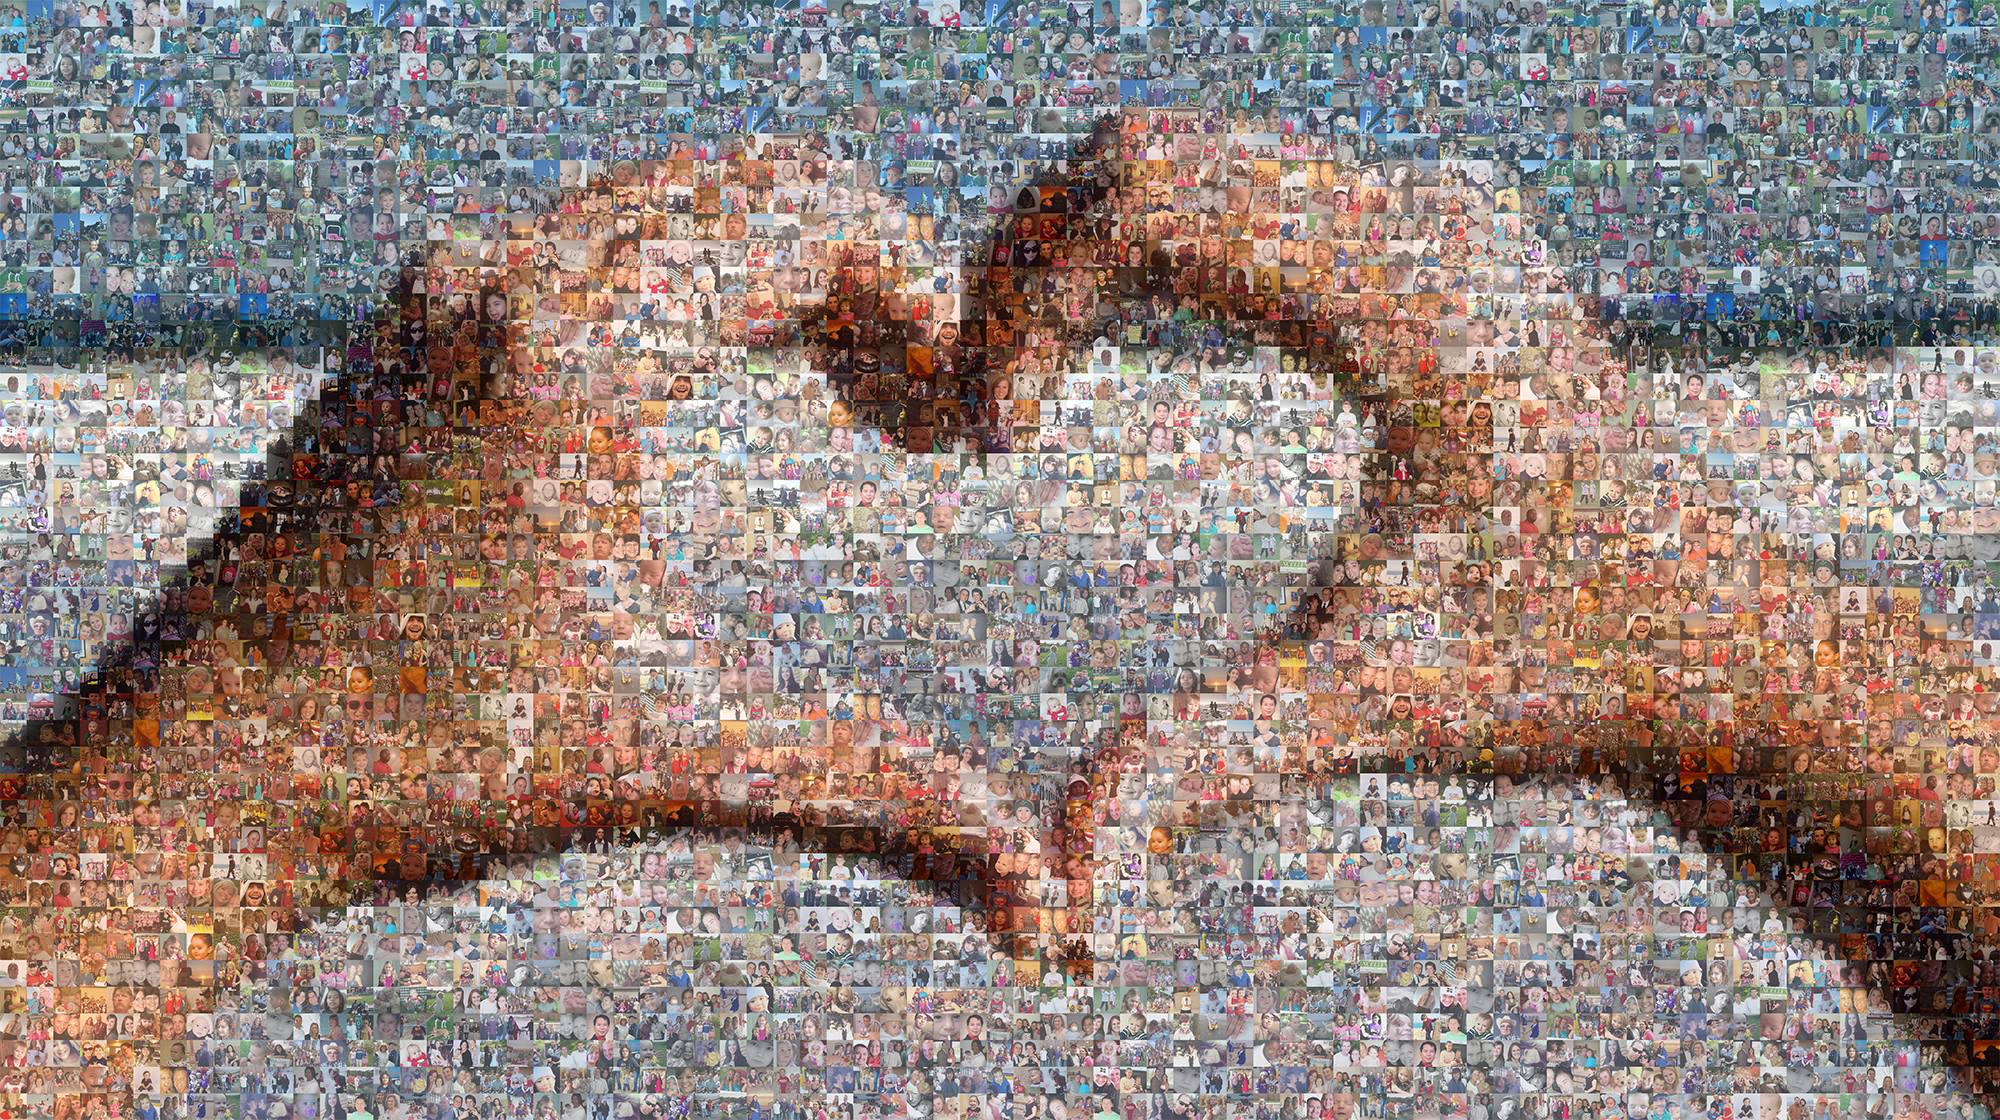 Picture Mosaics - True Photo Mosaic Design